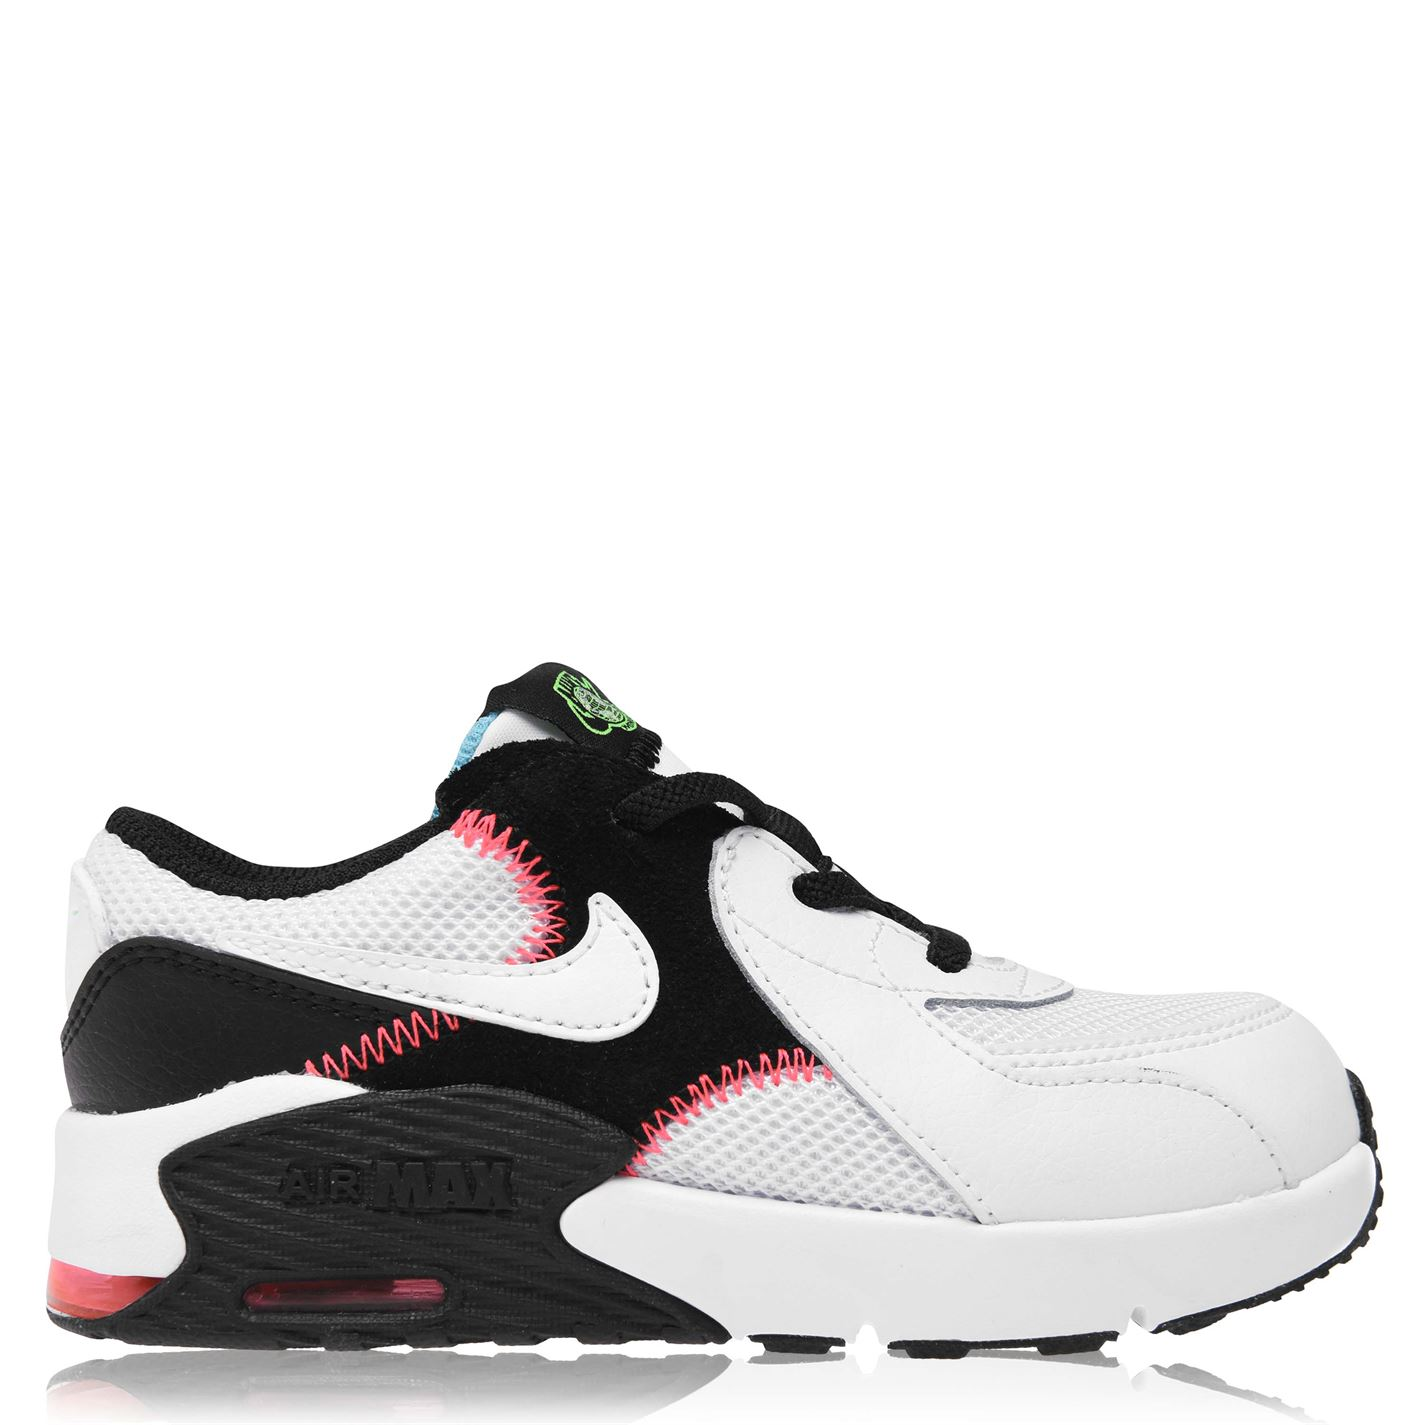 Nike Air Max Excee Trainers Infant Boys White/Wht/Blk